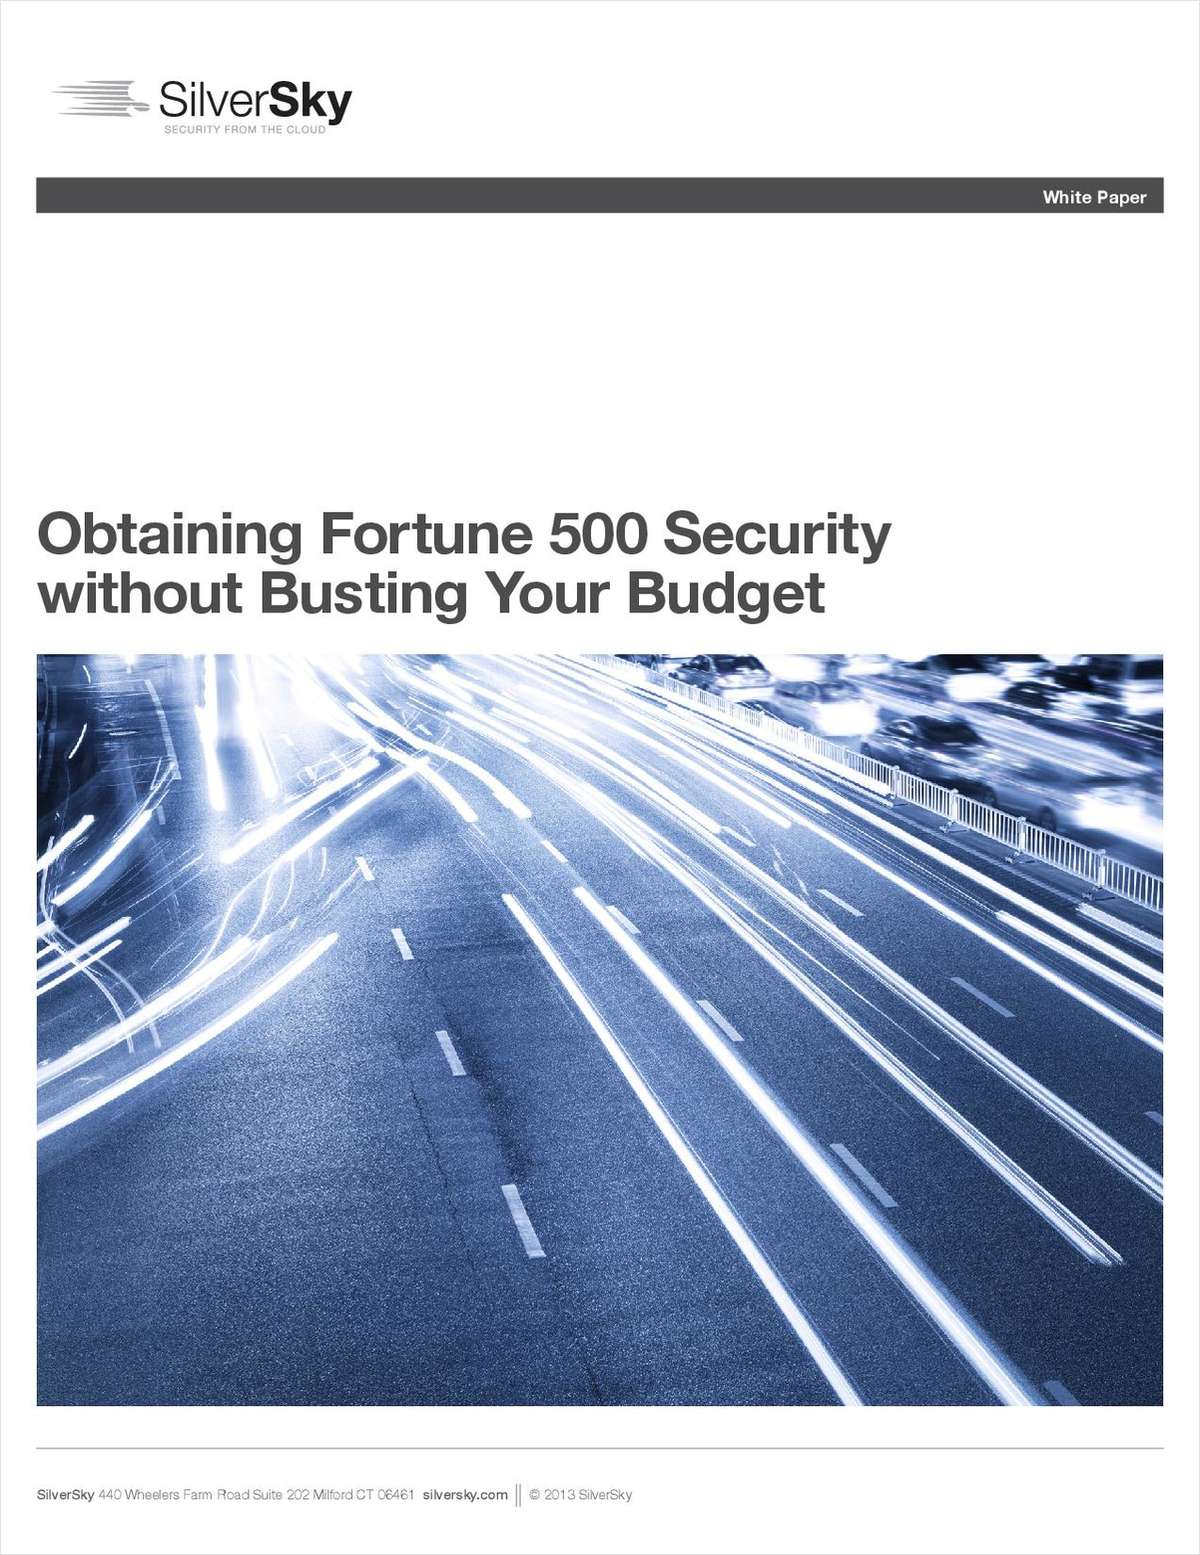 Obtaining Fortune 500 Security without Busting Your Budget